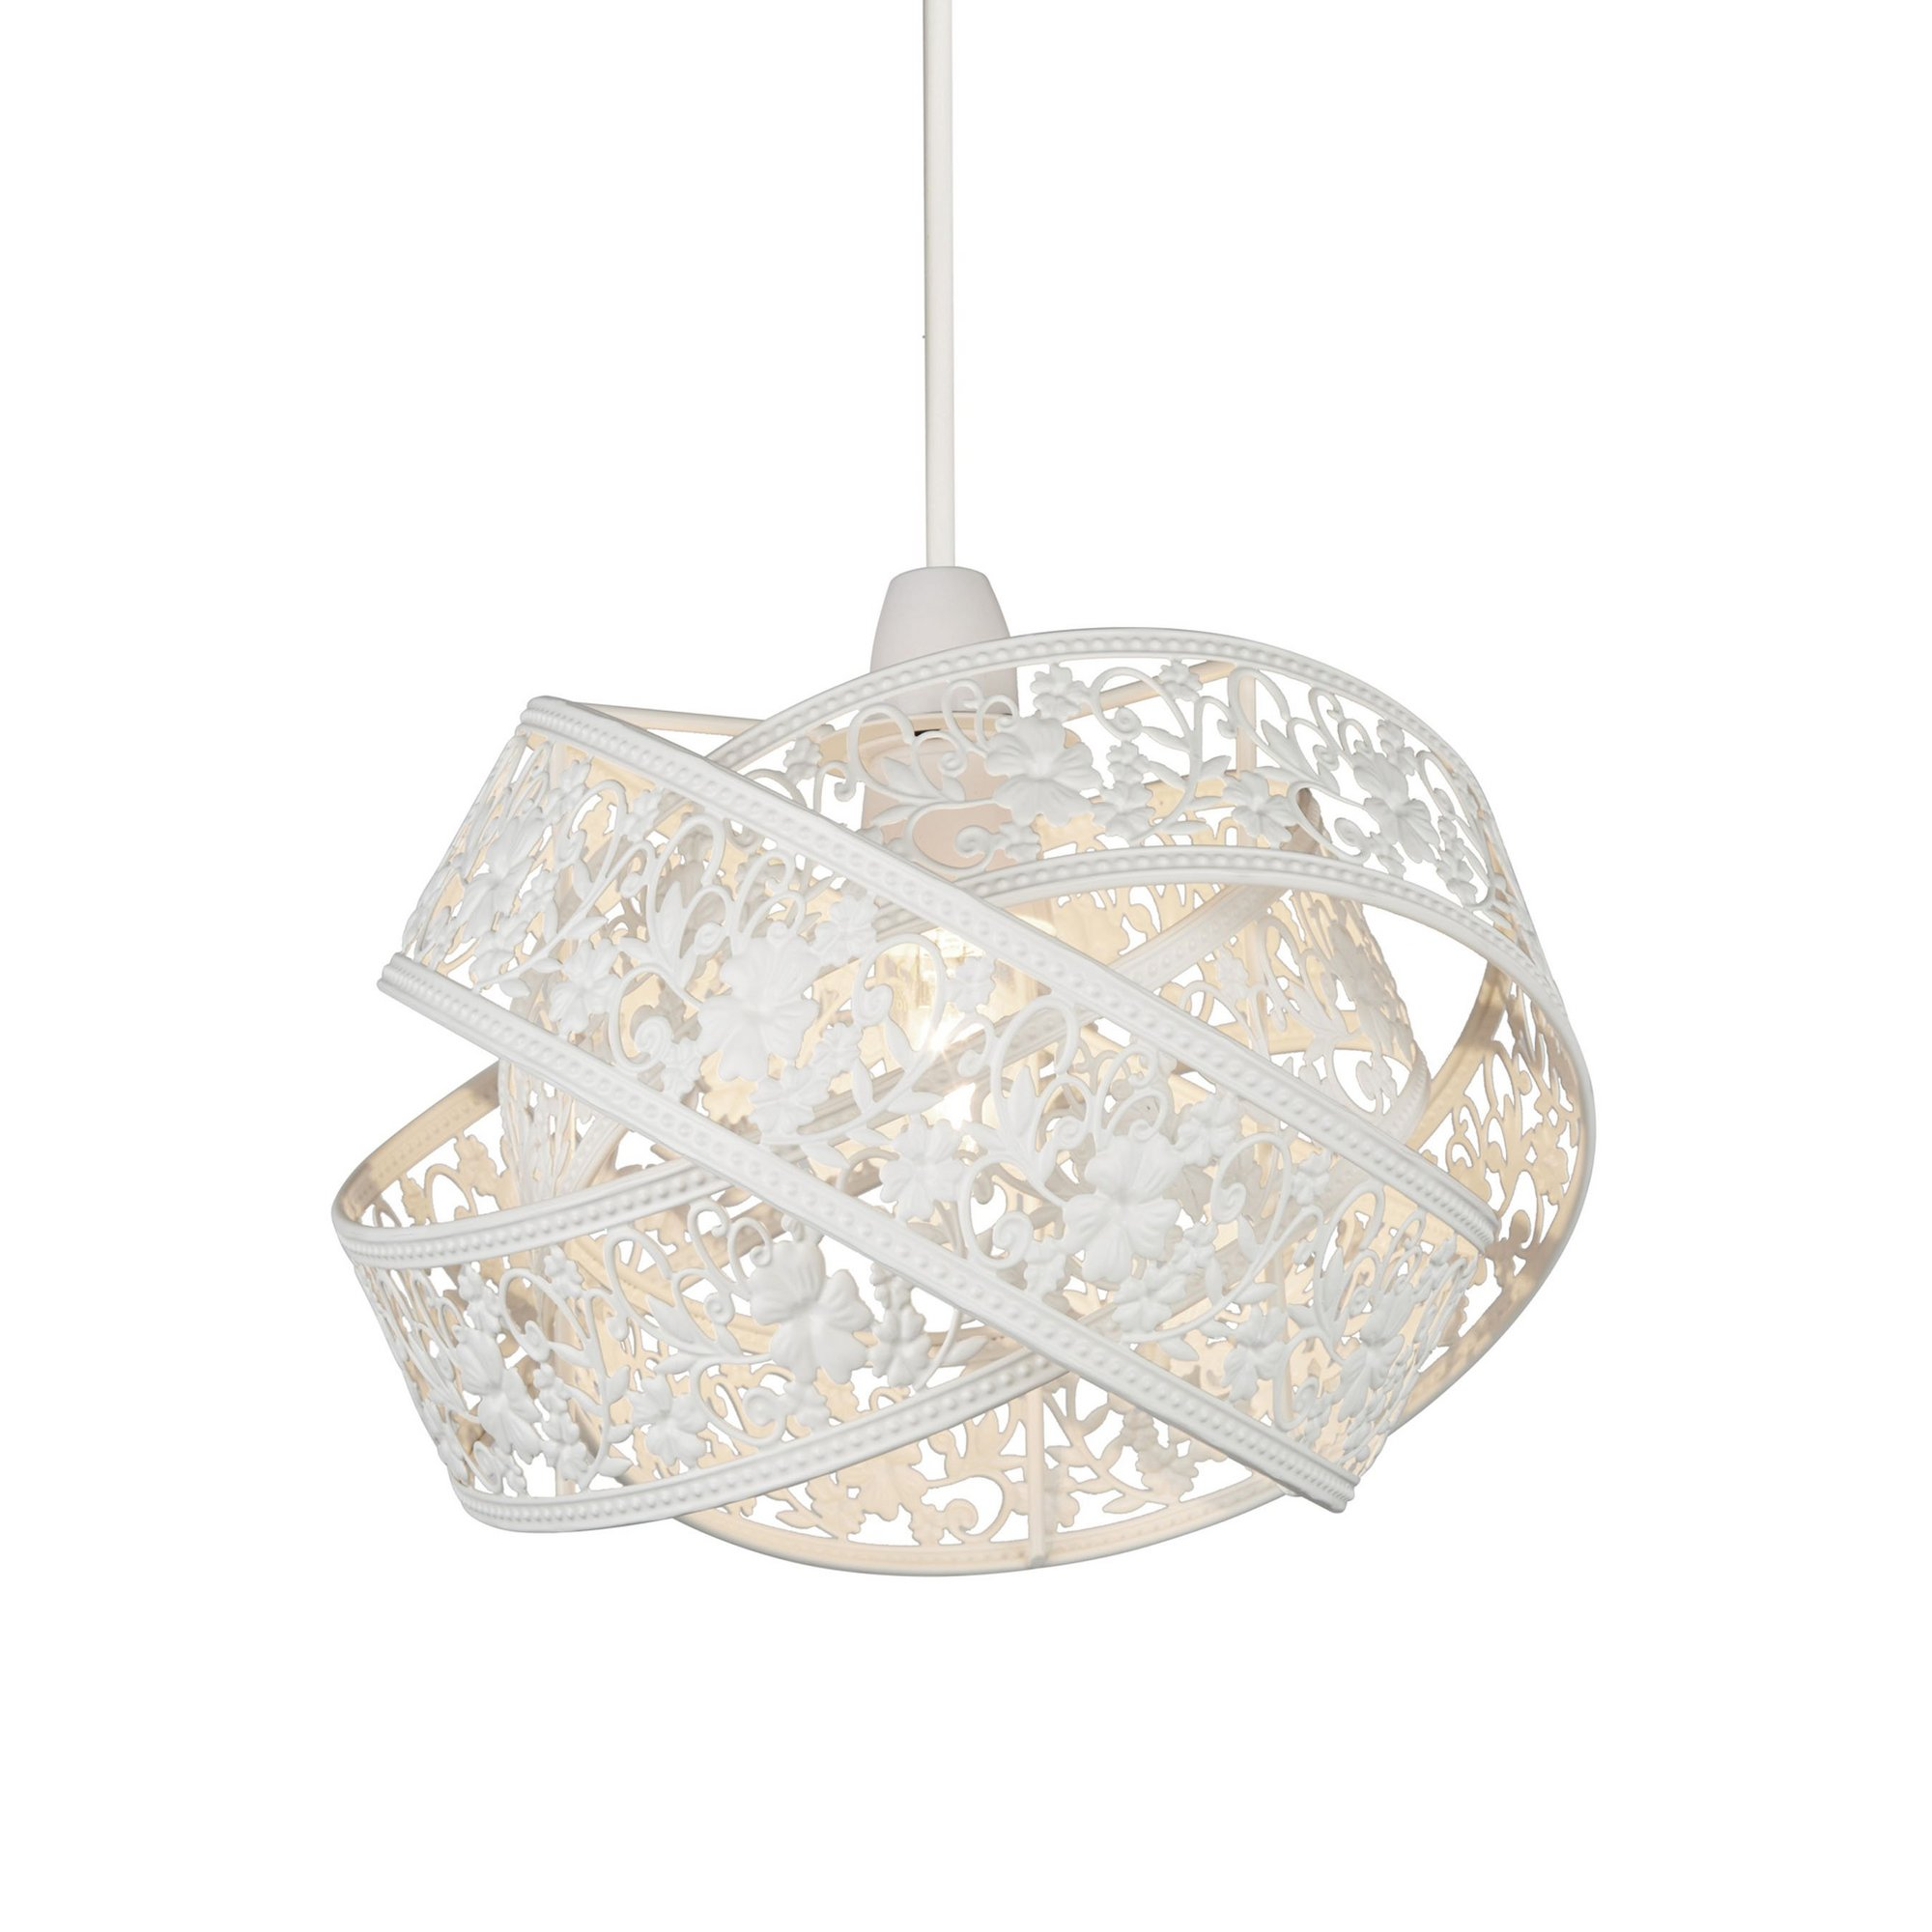 Image of 2 Layer White Fretwork Easy Fit Light Shade